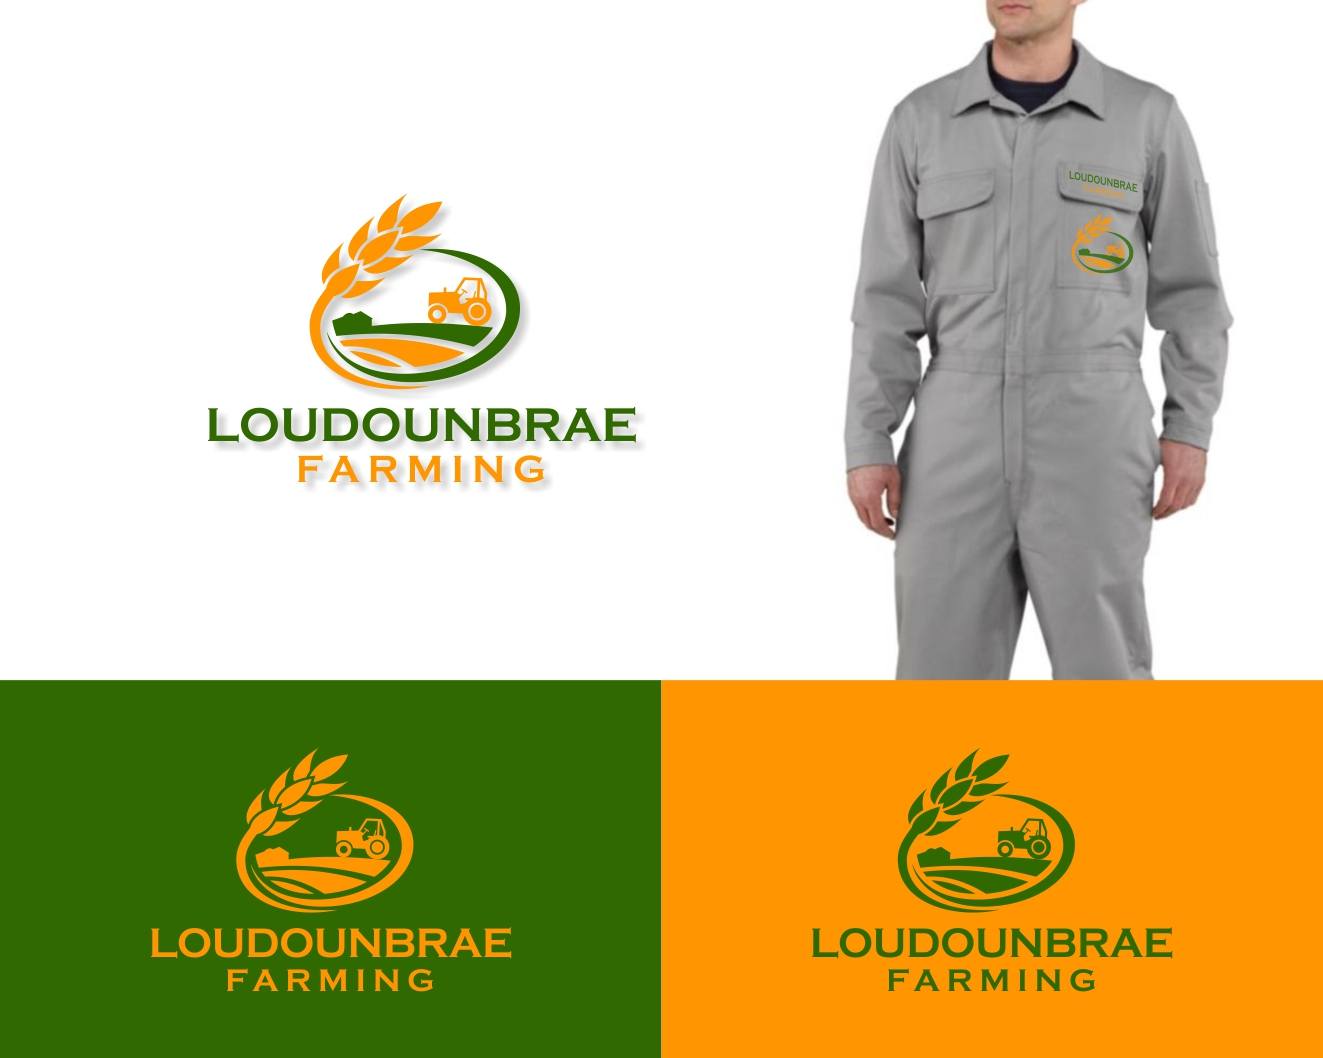 Logo Design by Rares.Andrei - Entry No. 58 in the Logo Design Contest Creative Logo Design for Loudounbrae Farming.